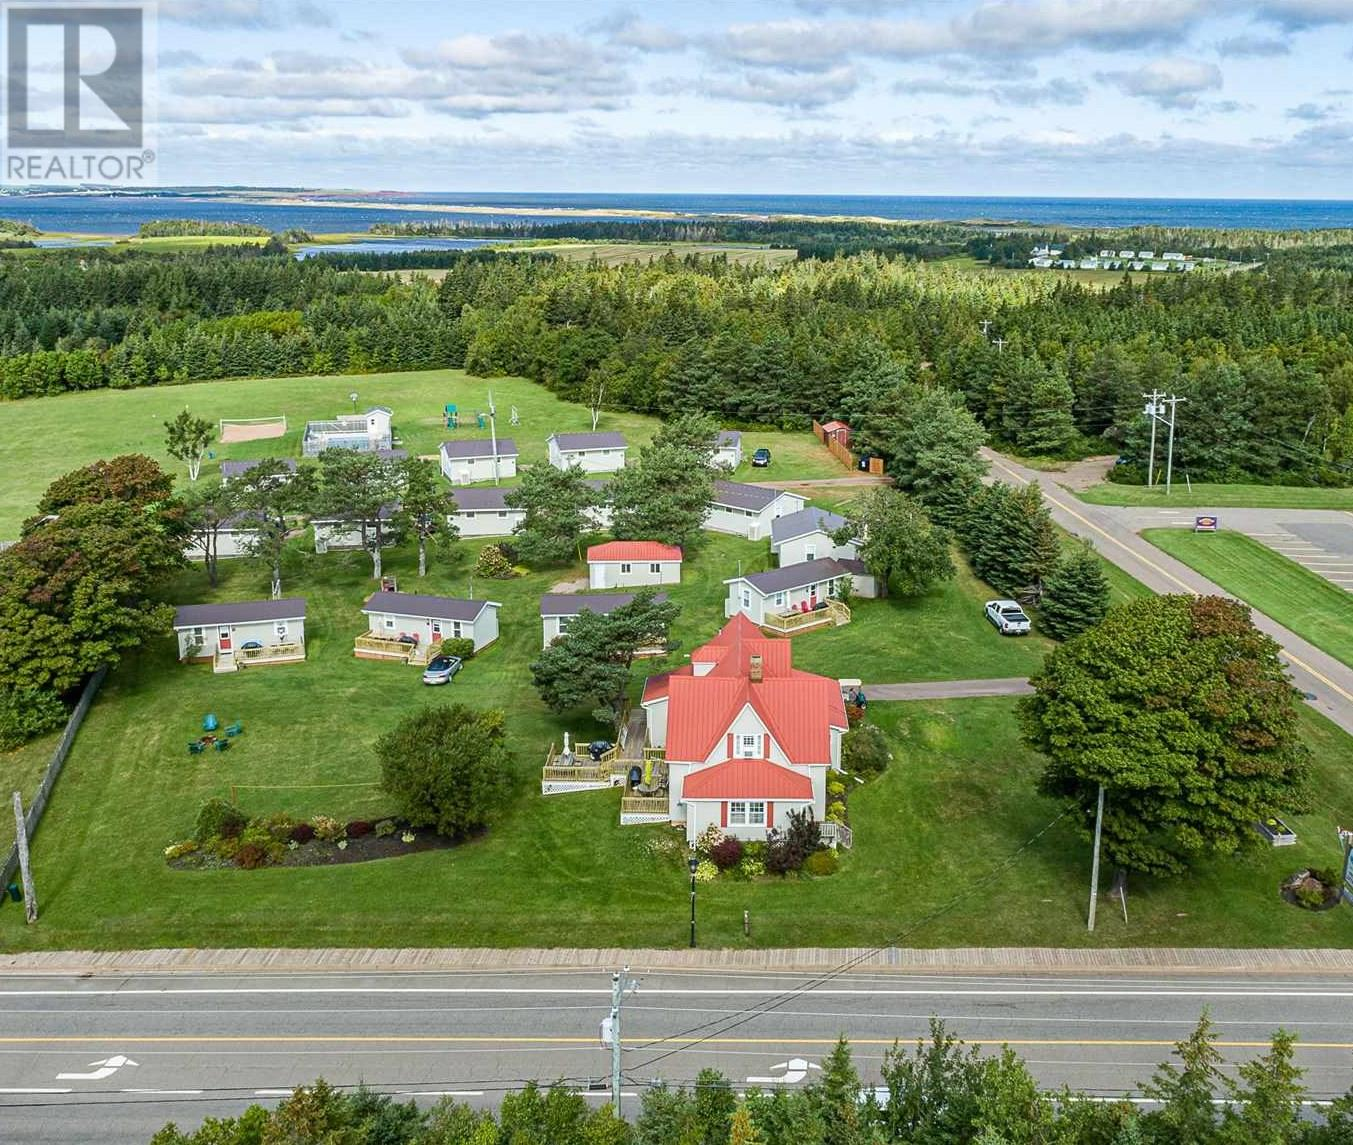 residential property for For sale at Cavendish, Prince Edward Island